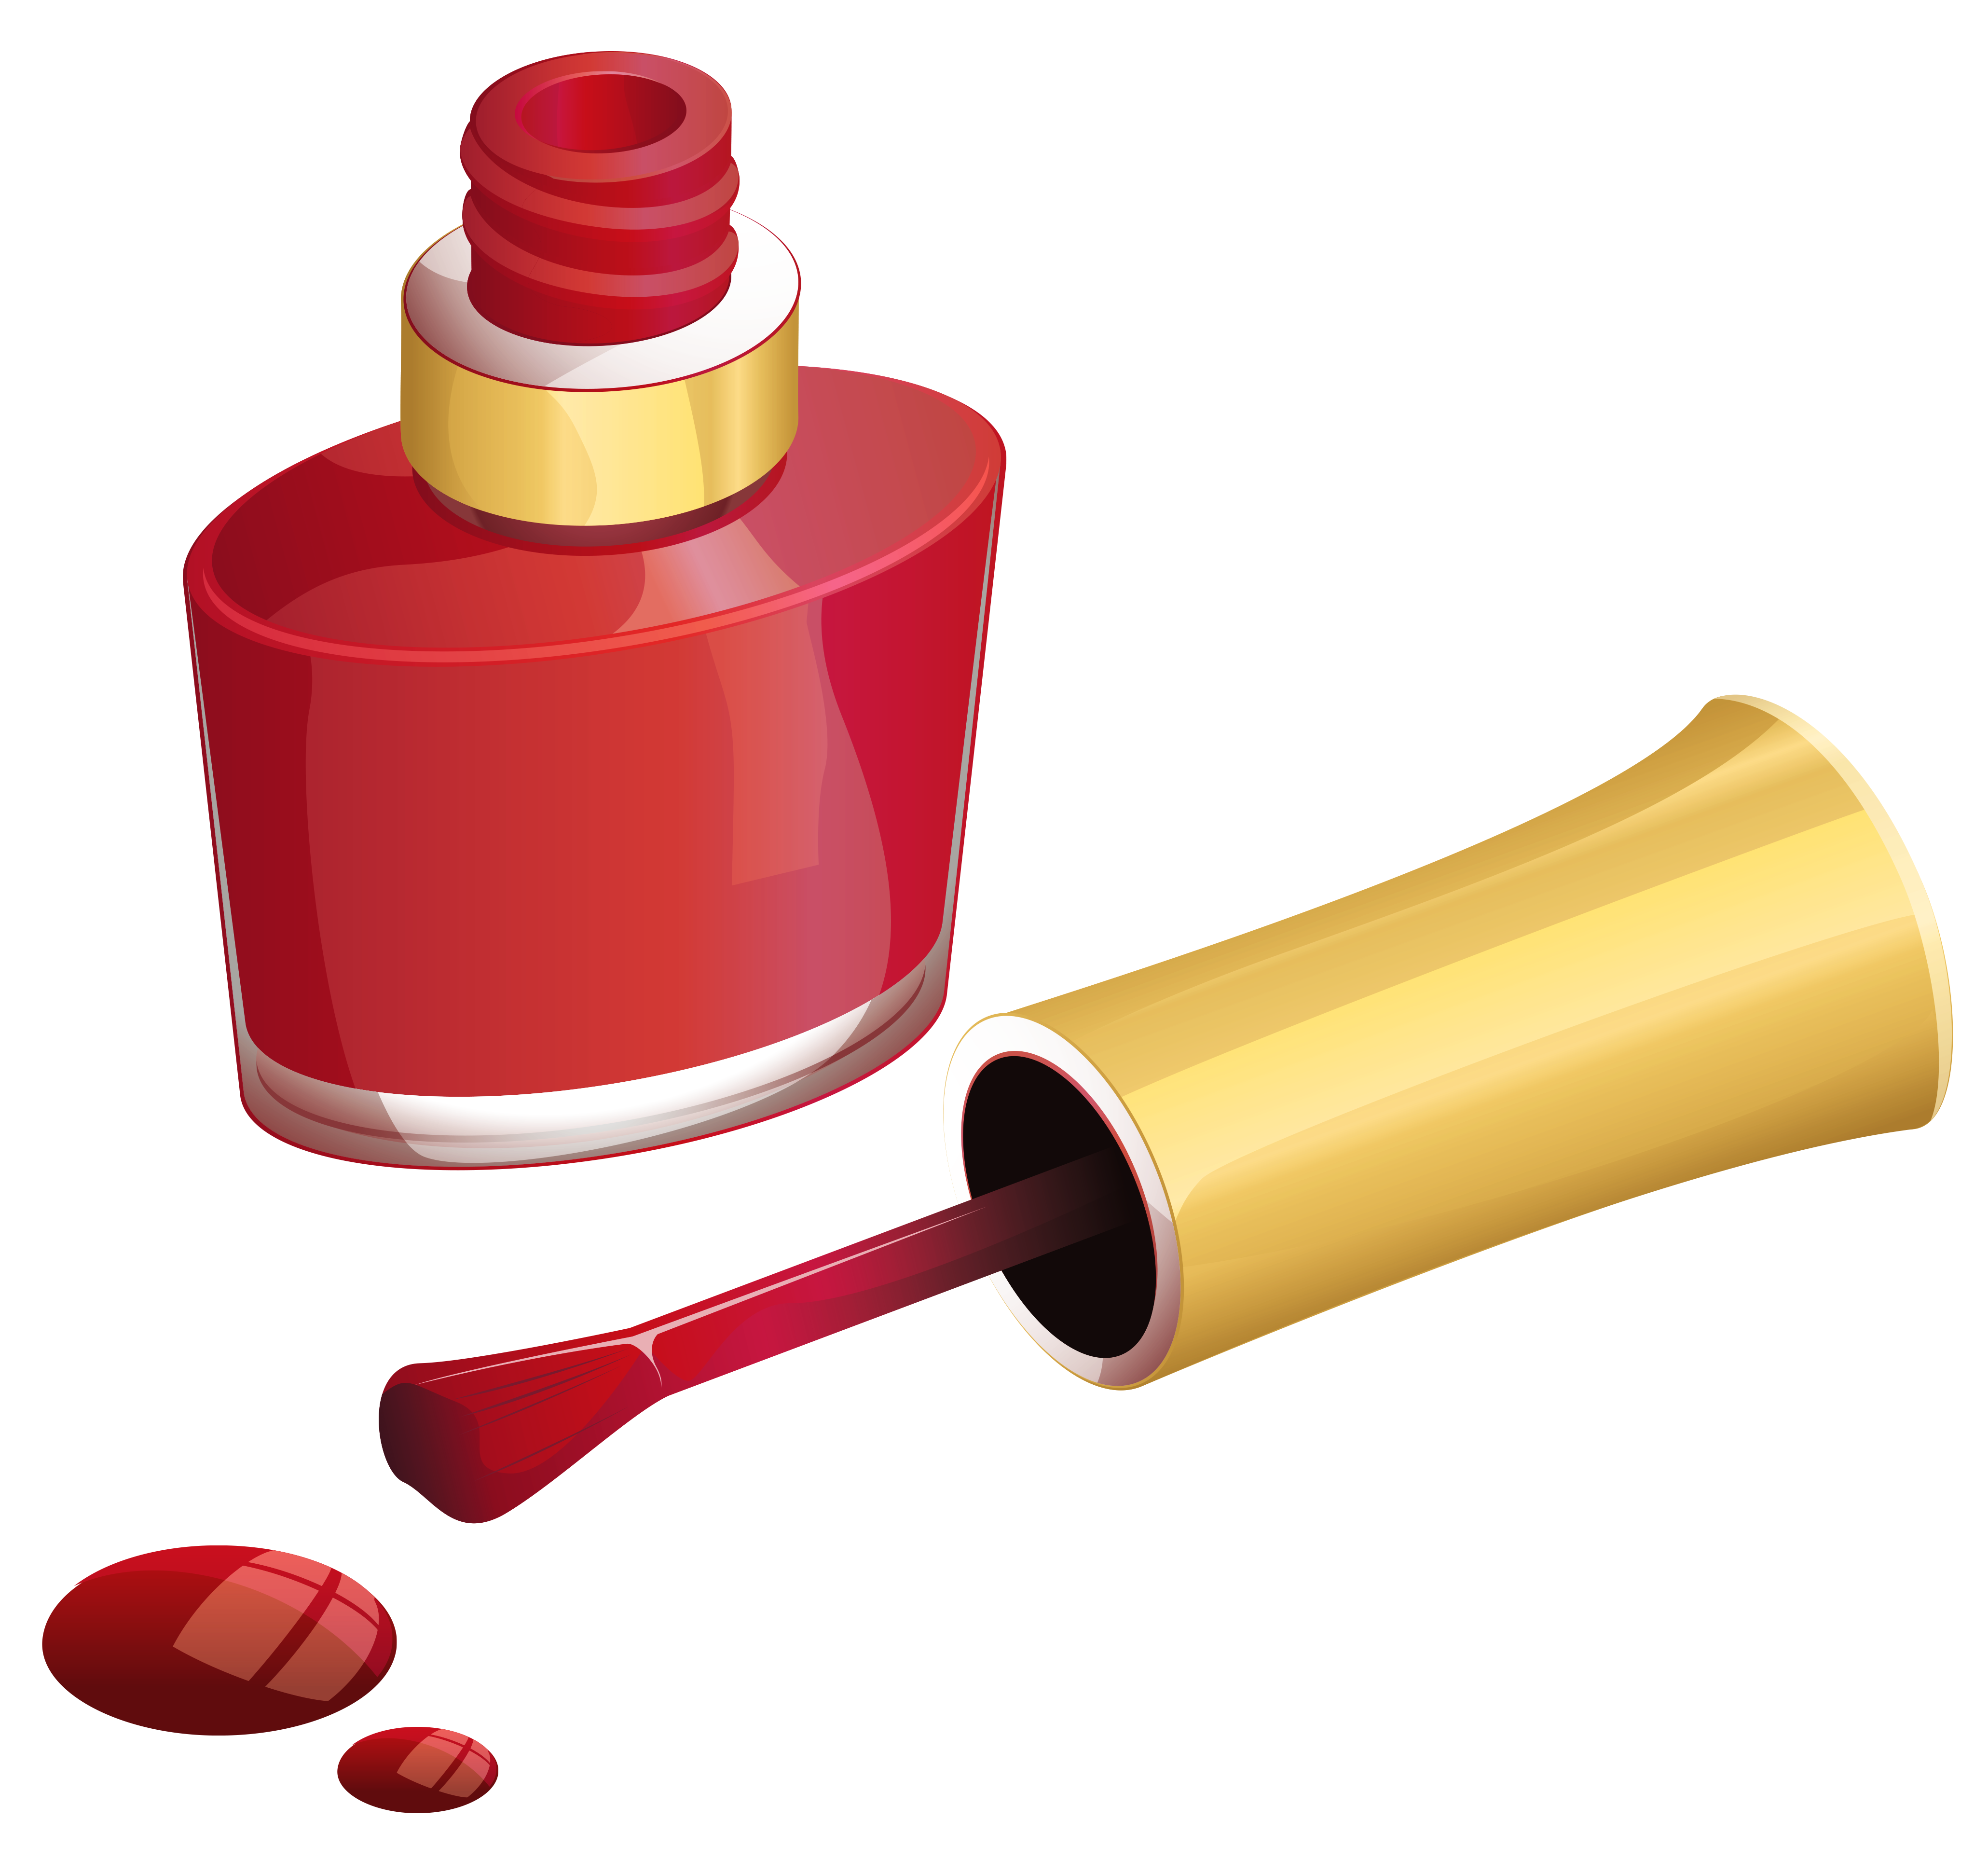 Red Nail Polish Clipart.